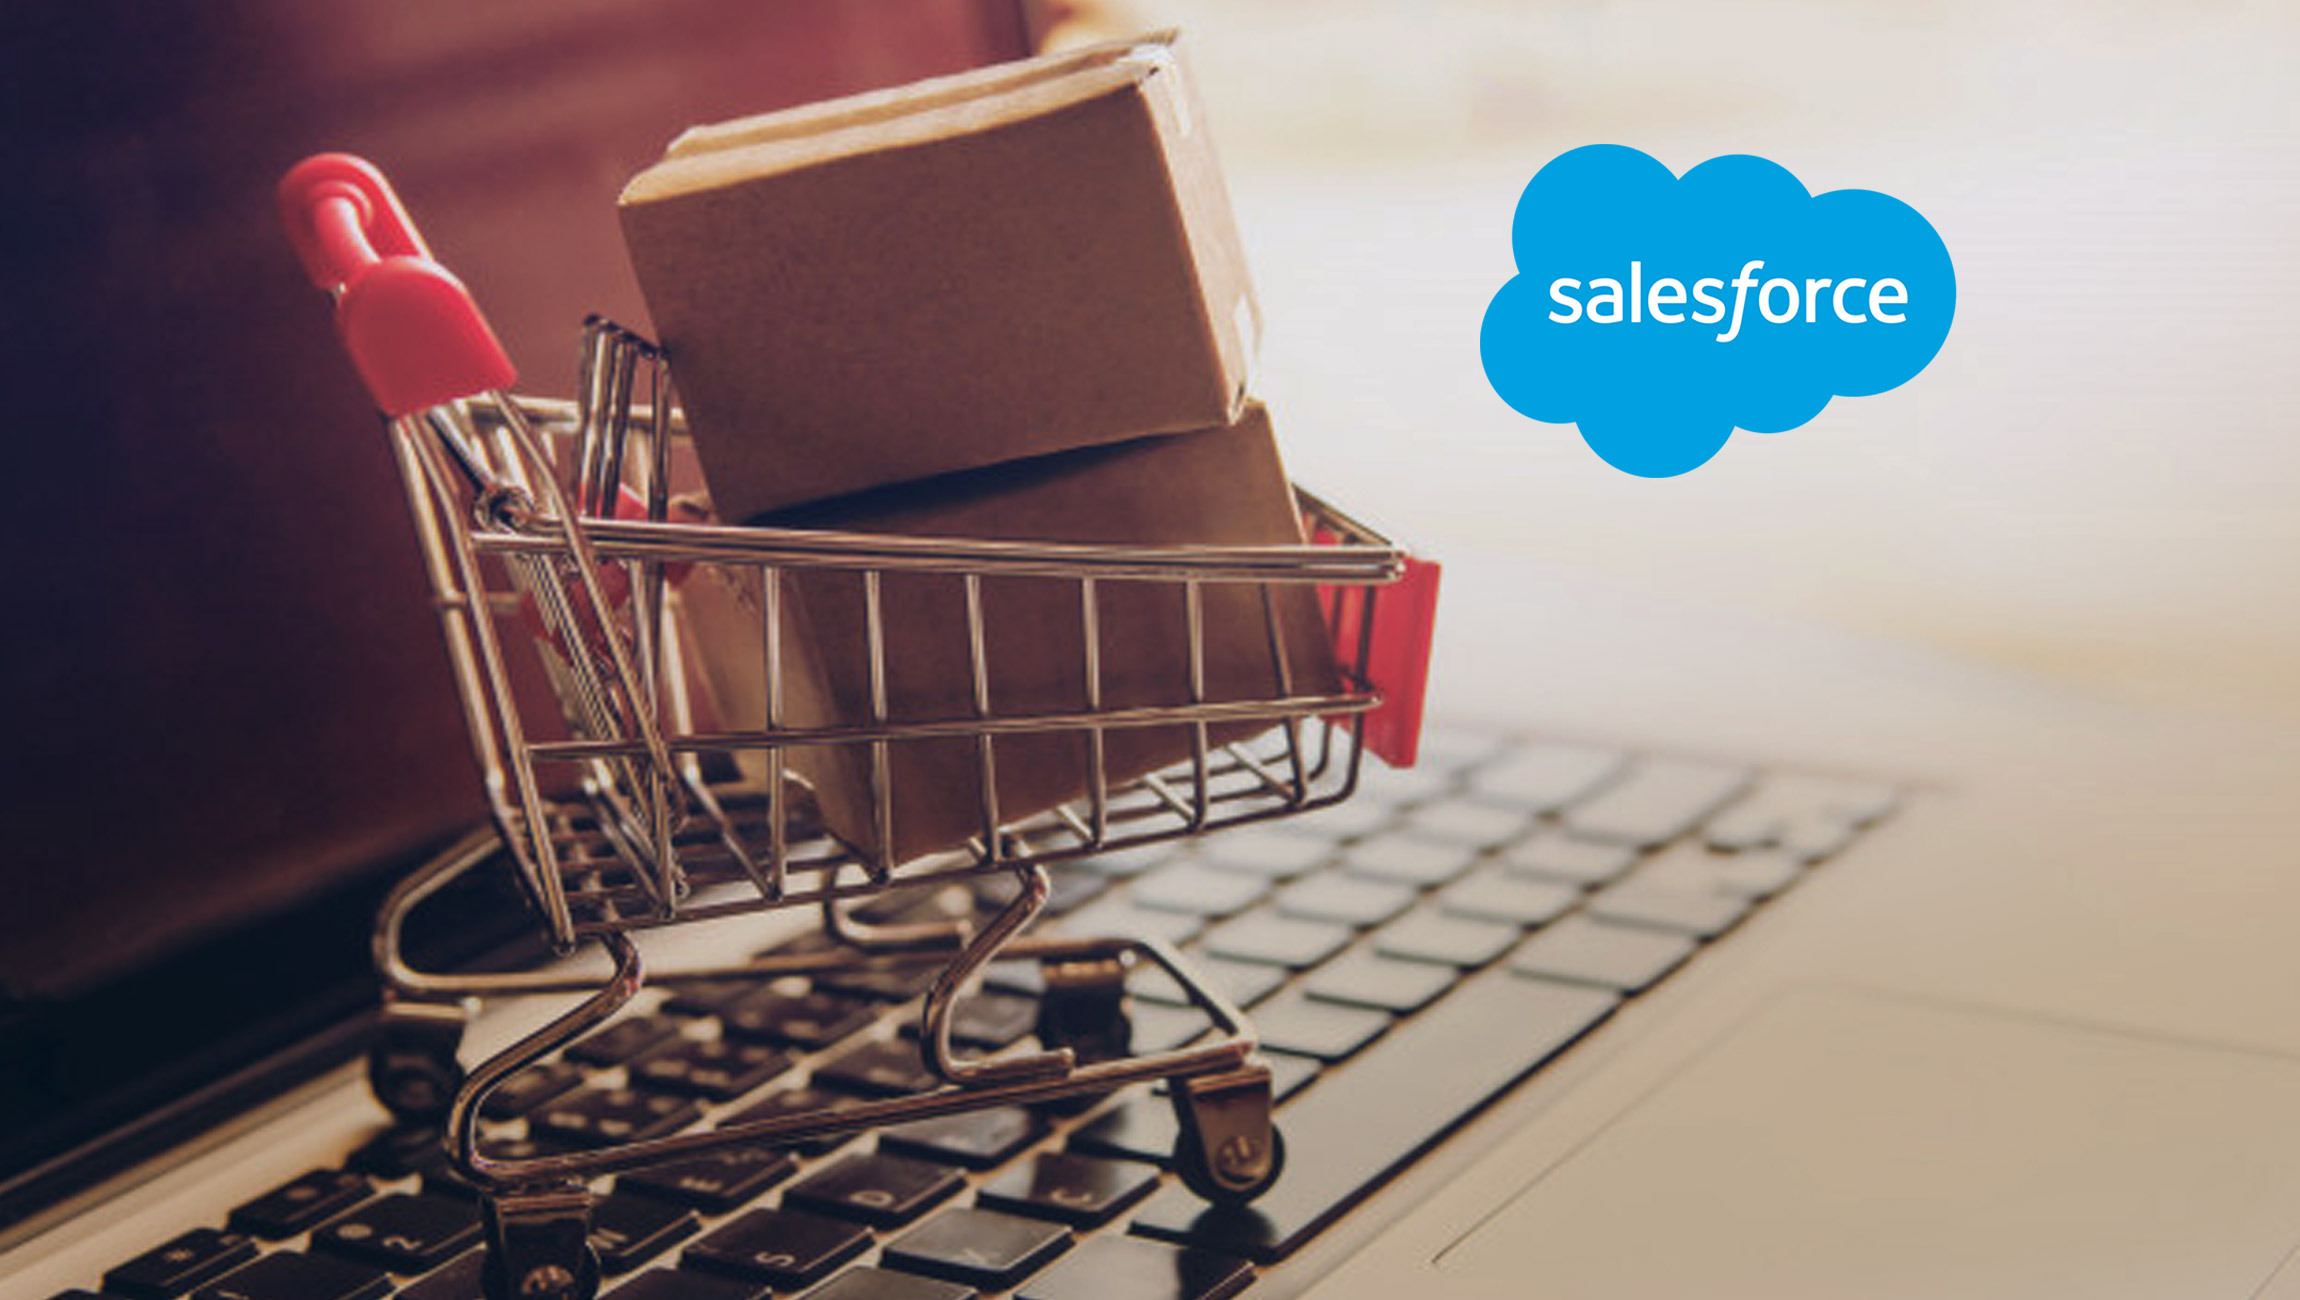 Salesforce Introduces Lightning Order Management - Enabling Brands to Deliver End-To-End Commerce Experiences, From Shopping to Shipping